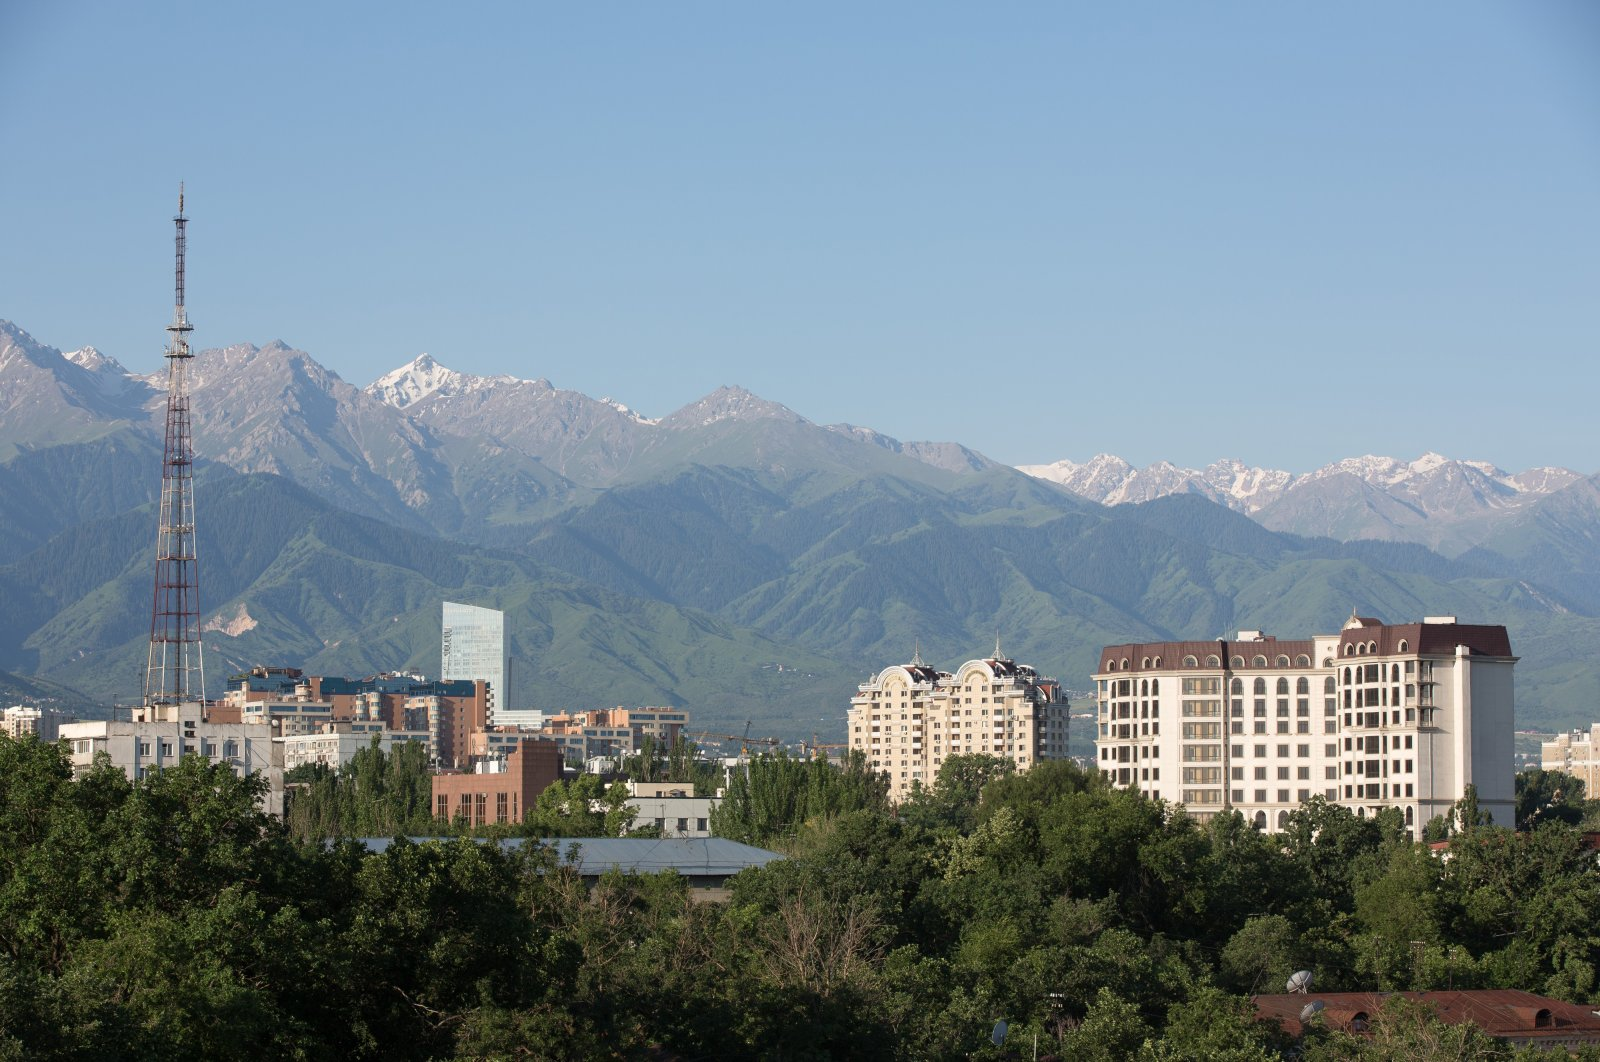 Residential apartment blocks sit on the city skyline in Almaty, Kazakhstan, June 23, 2015. (Getty Images)